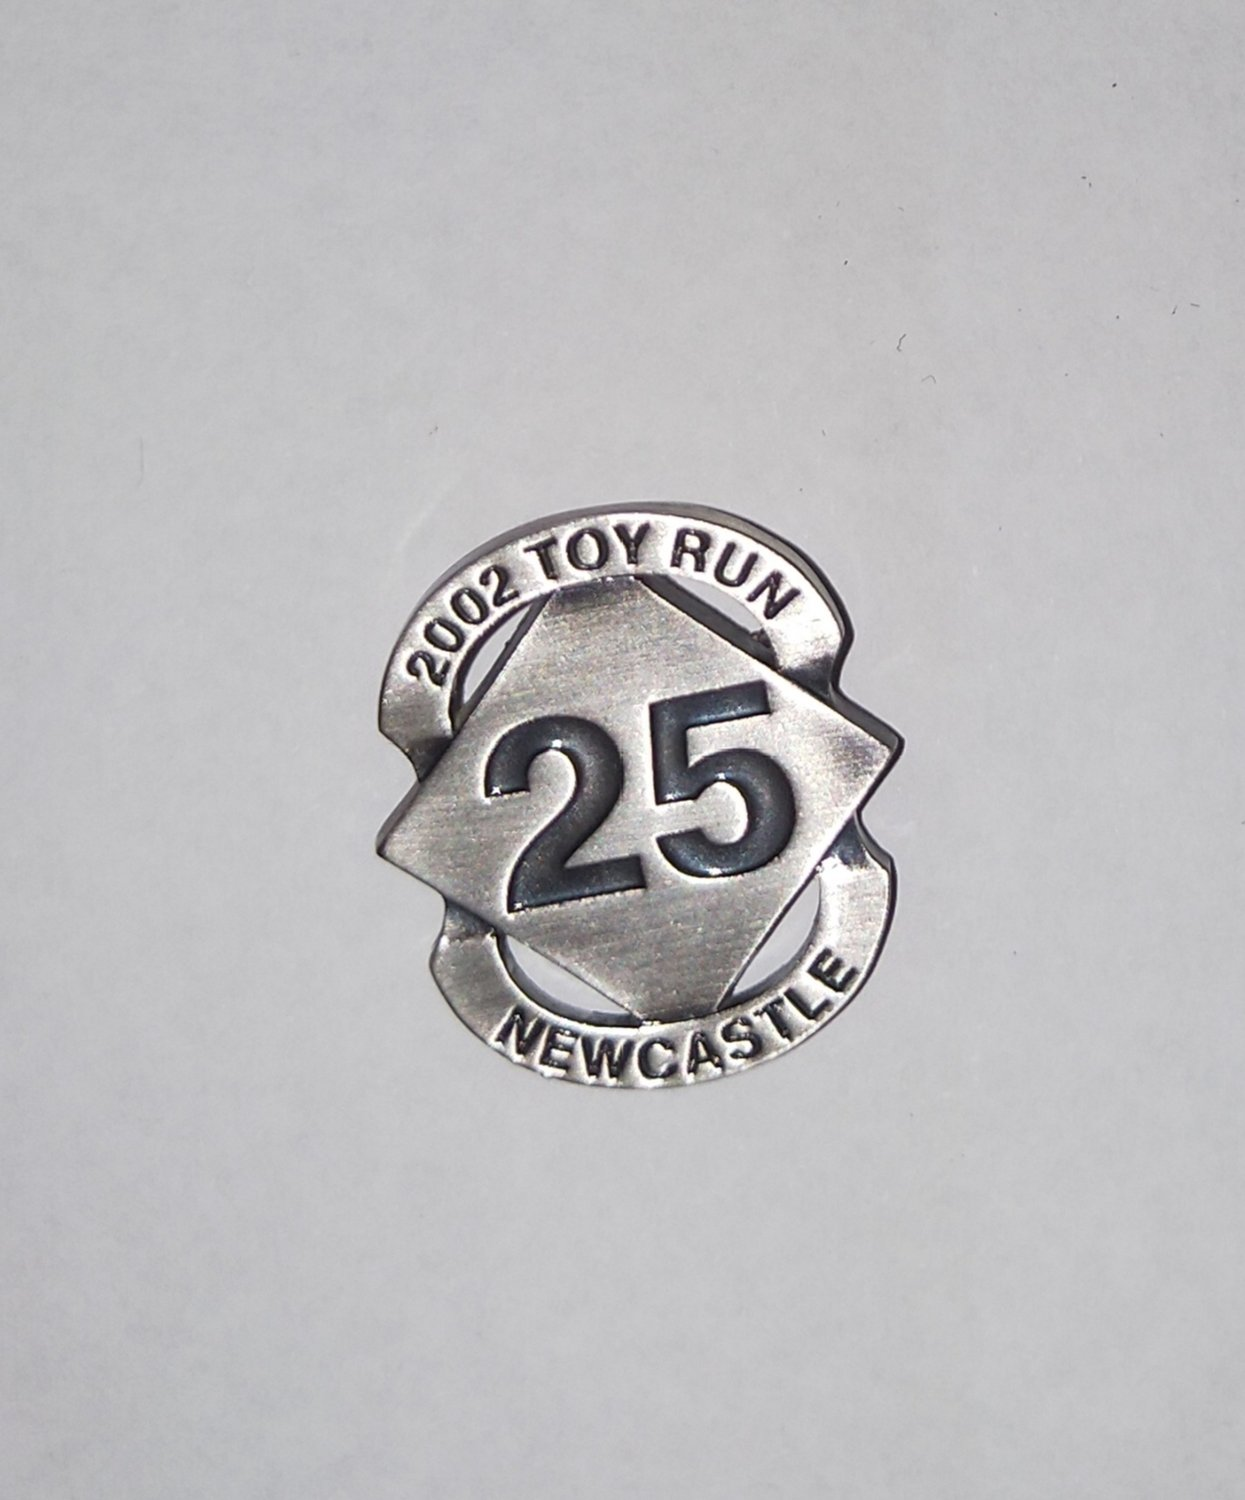 2002 Metal Commemorative Badge (limited stock)